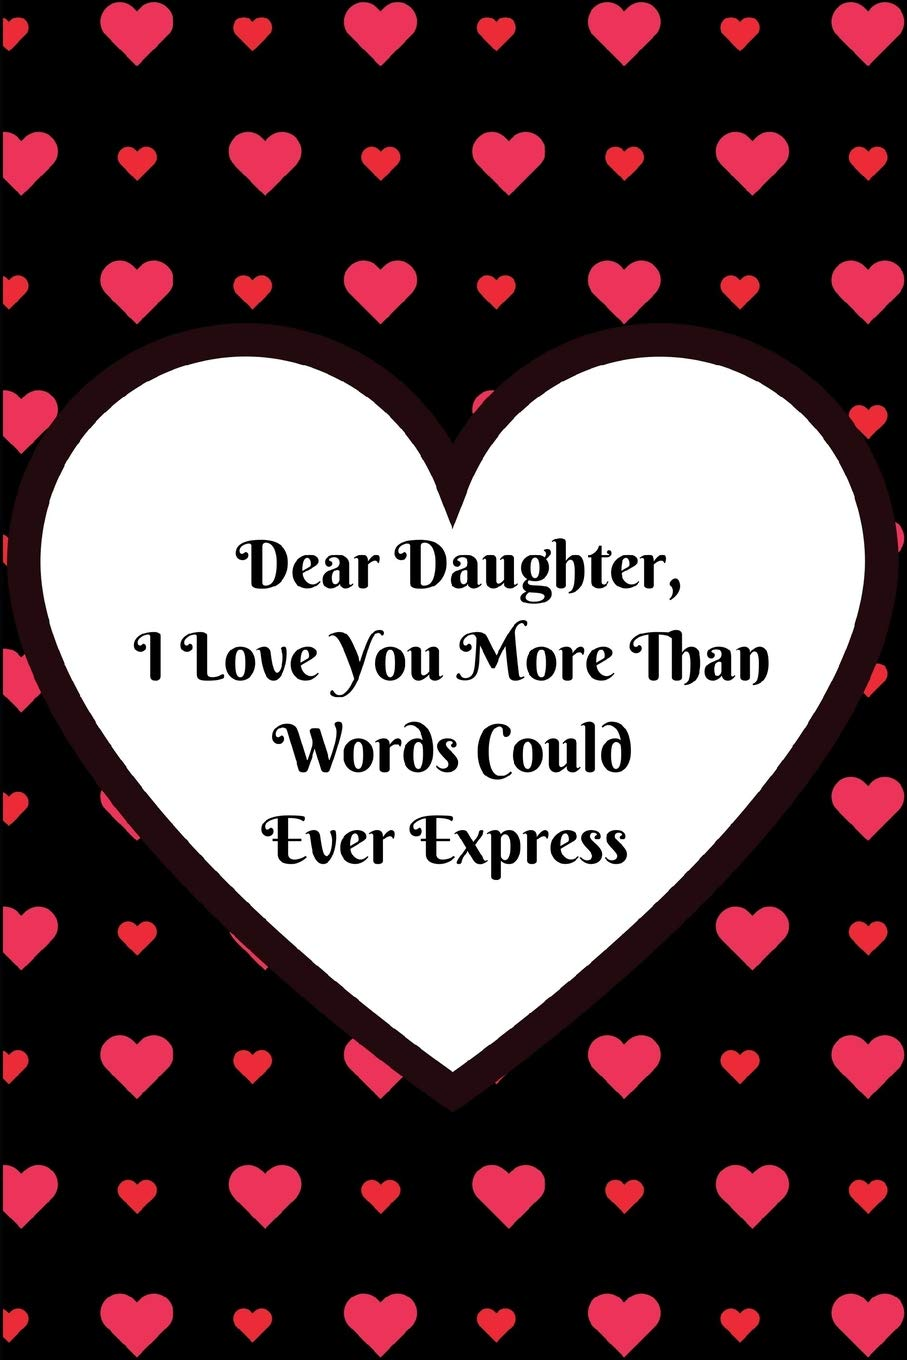 Dear Daughter I Love You More Than Words Could Ever Express Journal Containing Inspirational Quotes Book Press Goddess 9781724188120 Amazon Com Books Beautiful quote and love message from mother to daughter holding her hand. dear daughter i love you more than